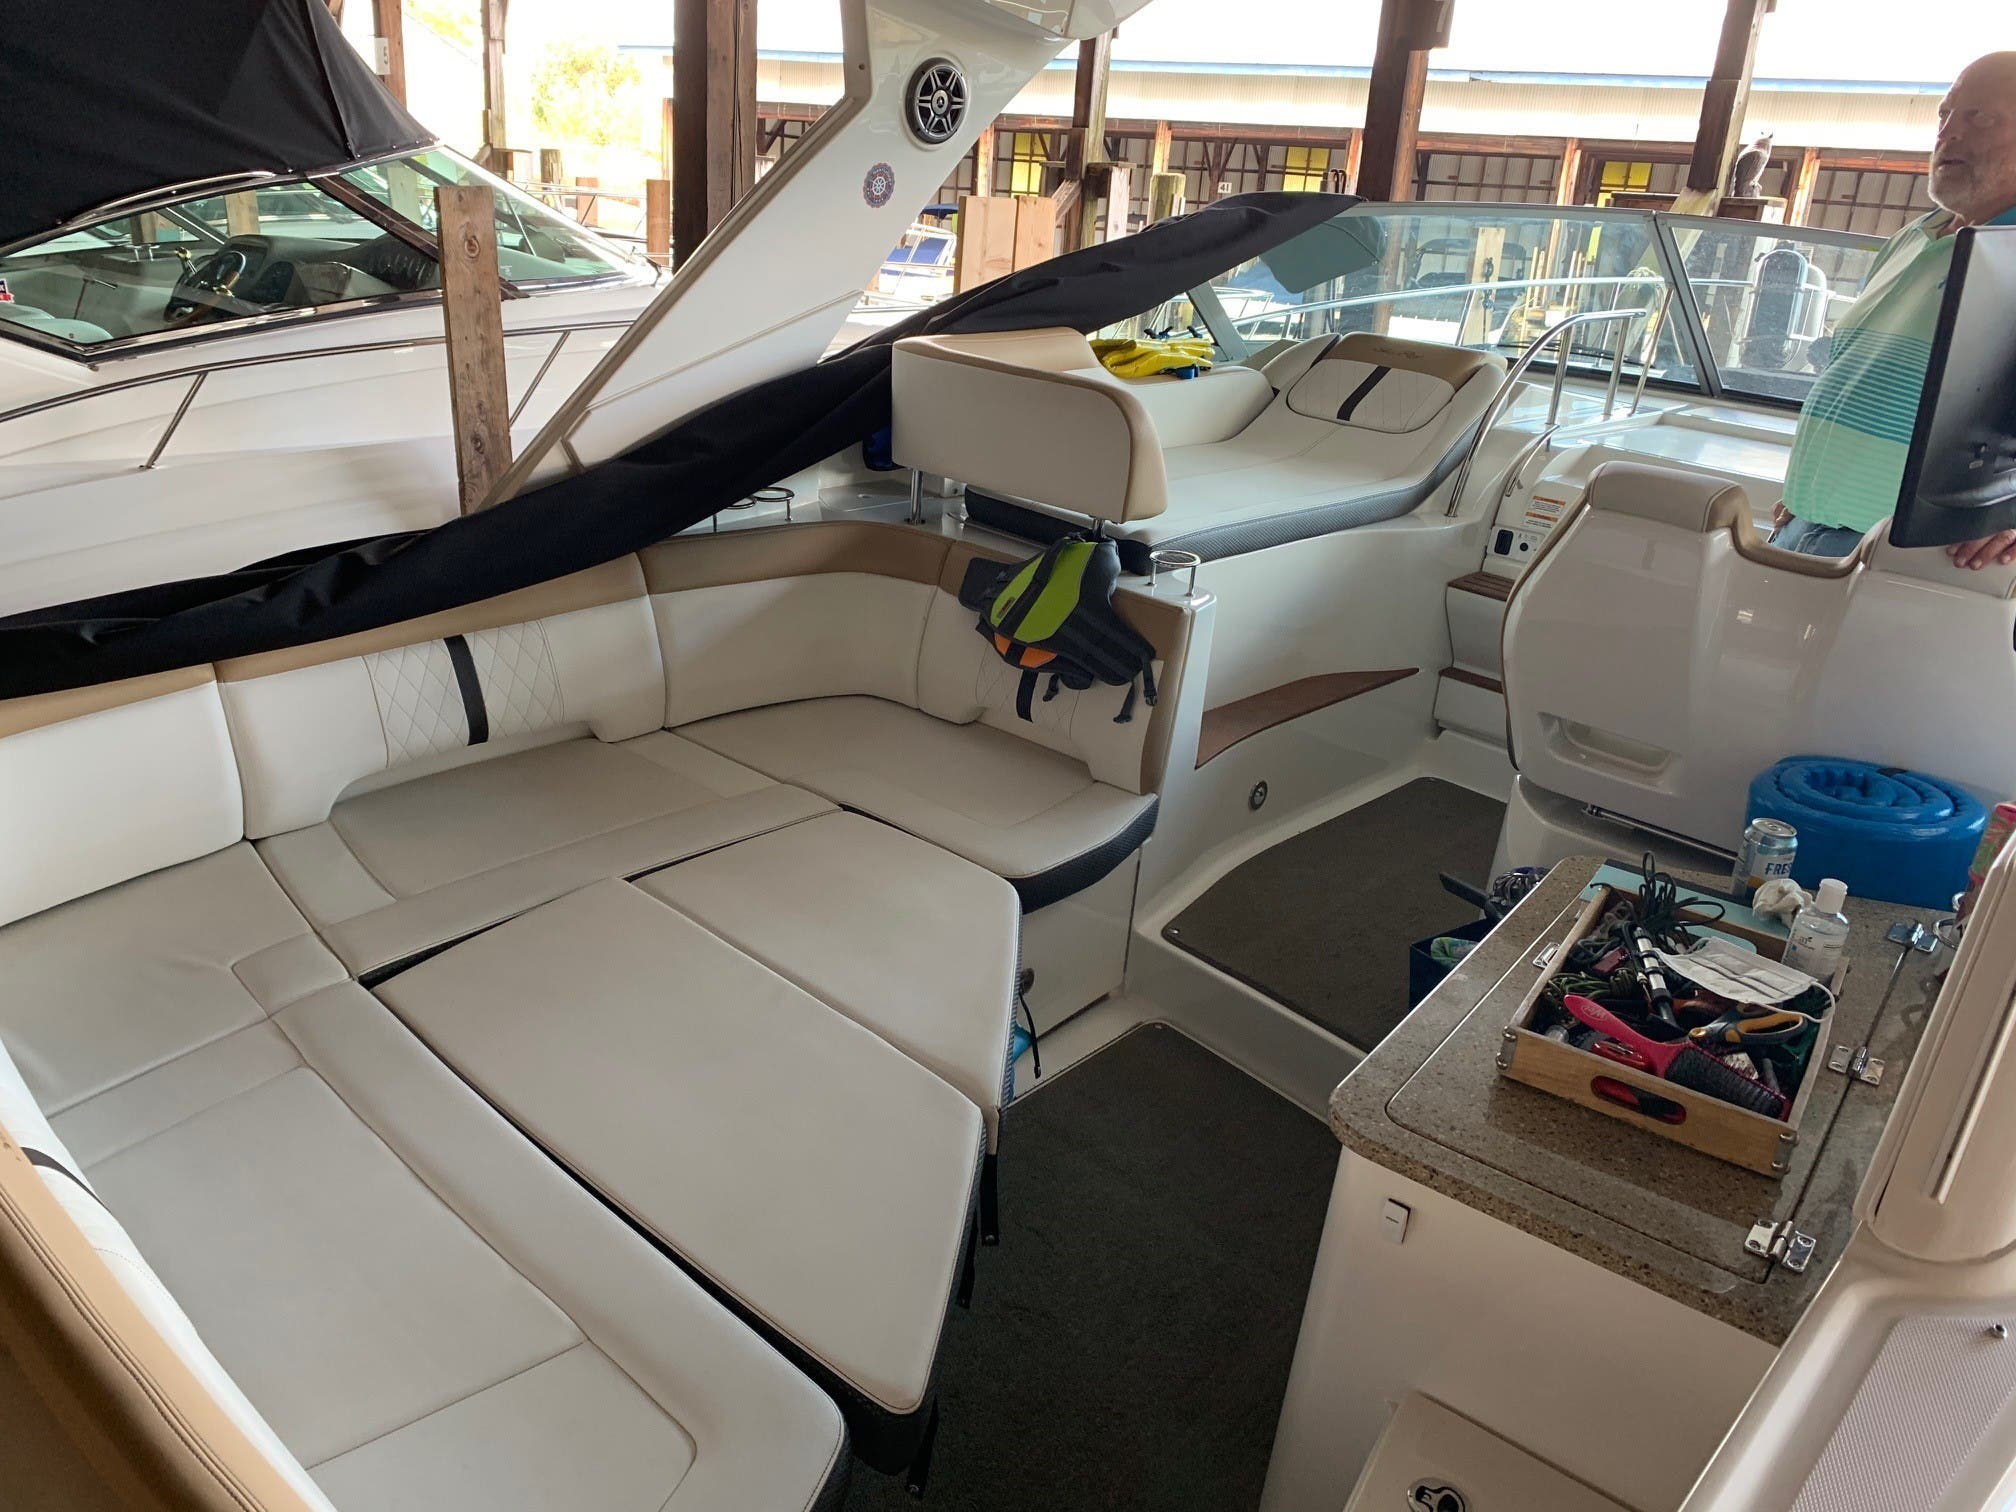 2016 Sea Ray boat for sale, model of the boat is 350 Sundancer & Image # 15 of 17